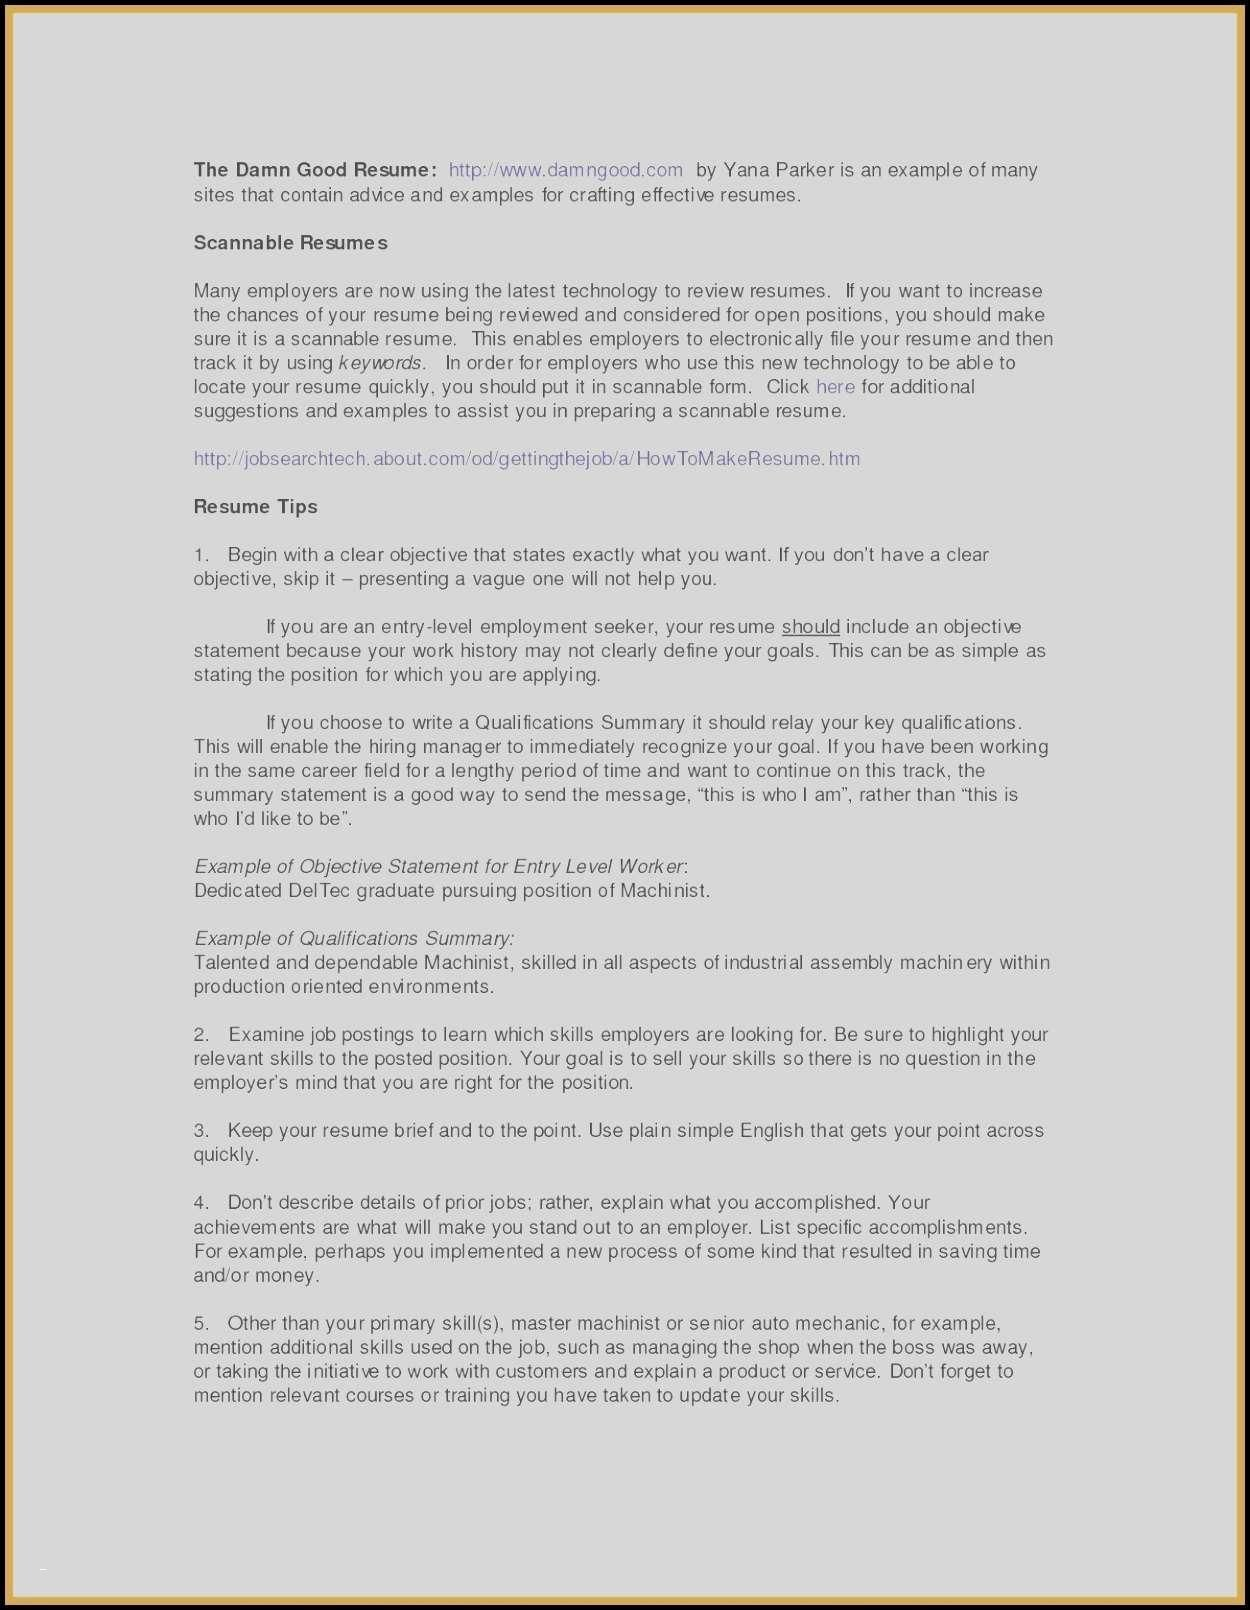 Resume Objective Example Law Enforcement Resume Objective Elegant 50 Resume Objective Examples Career Objectives For All Jobs Tips It Of Law Enforcement Resume Objective resume objective example wikiresume.com